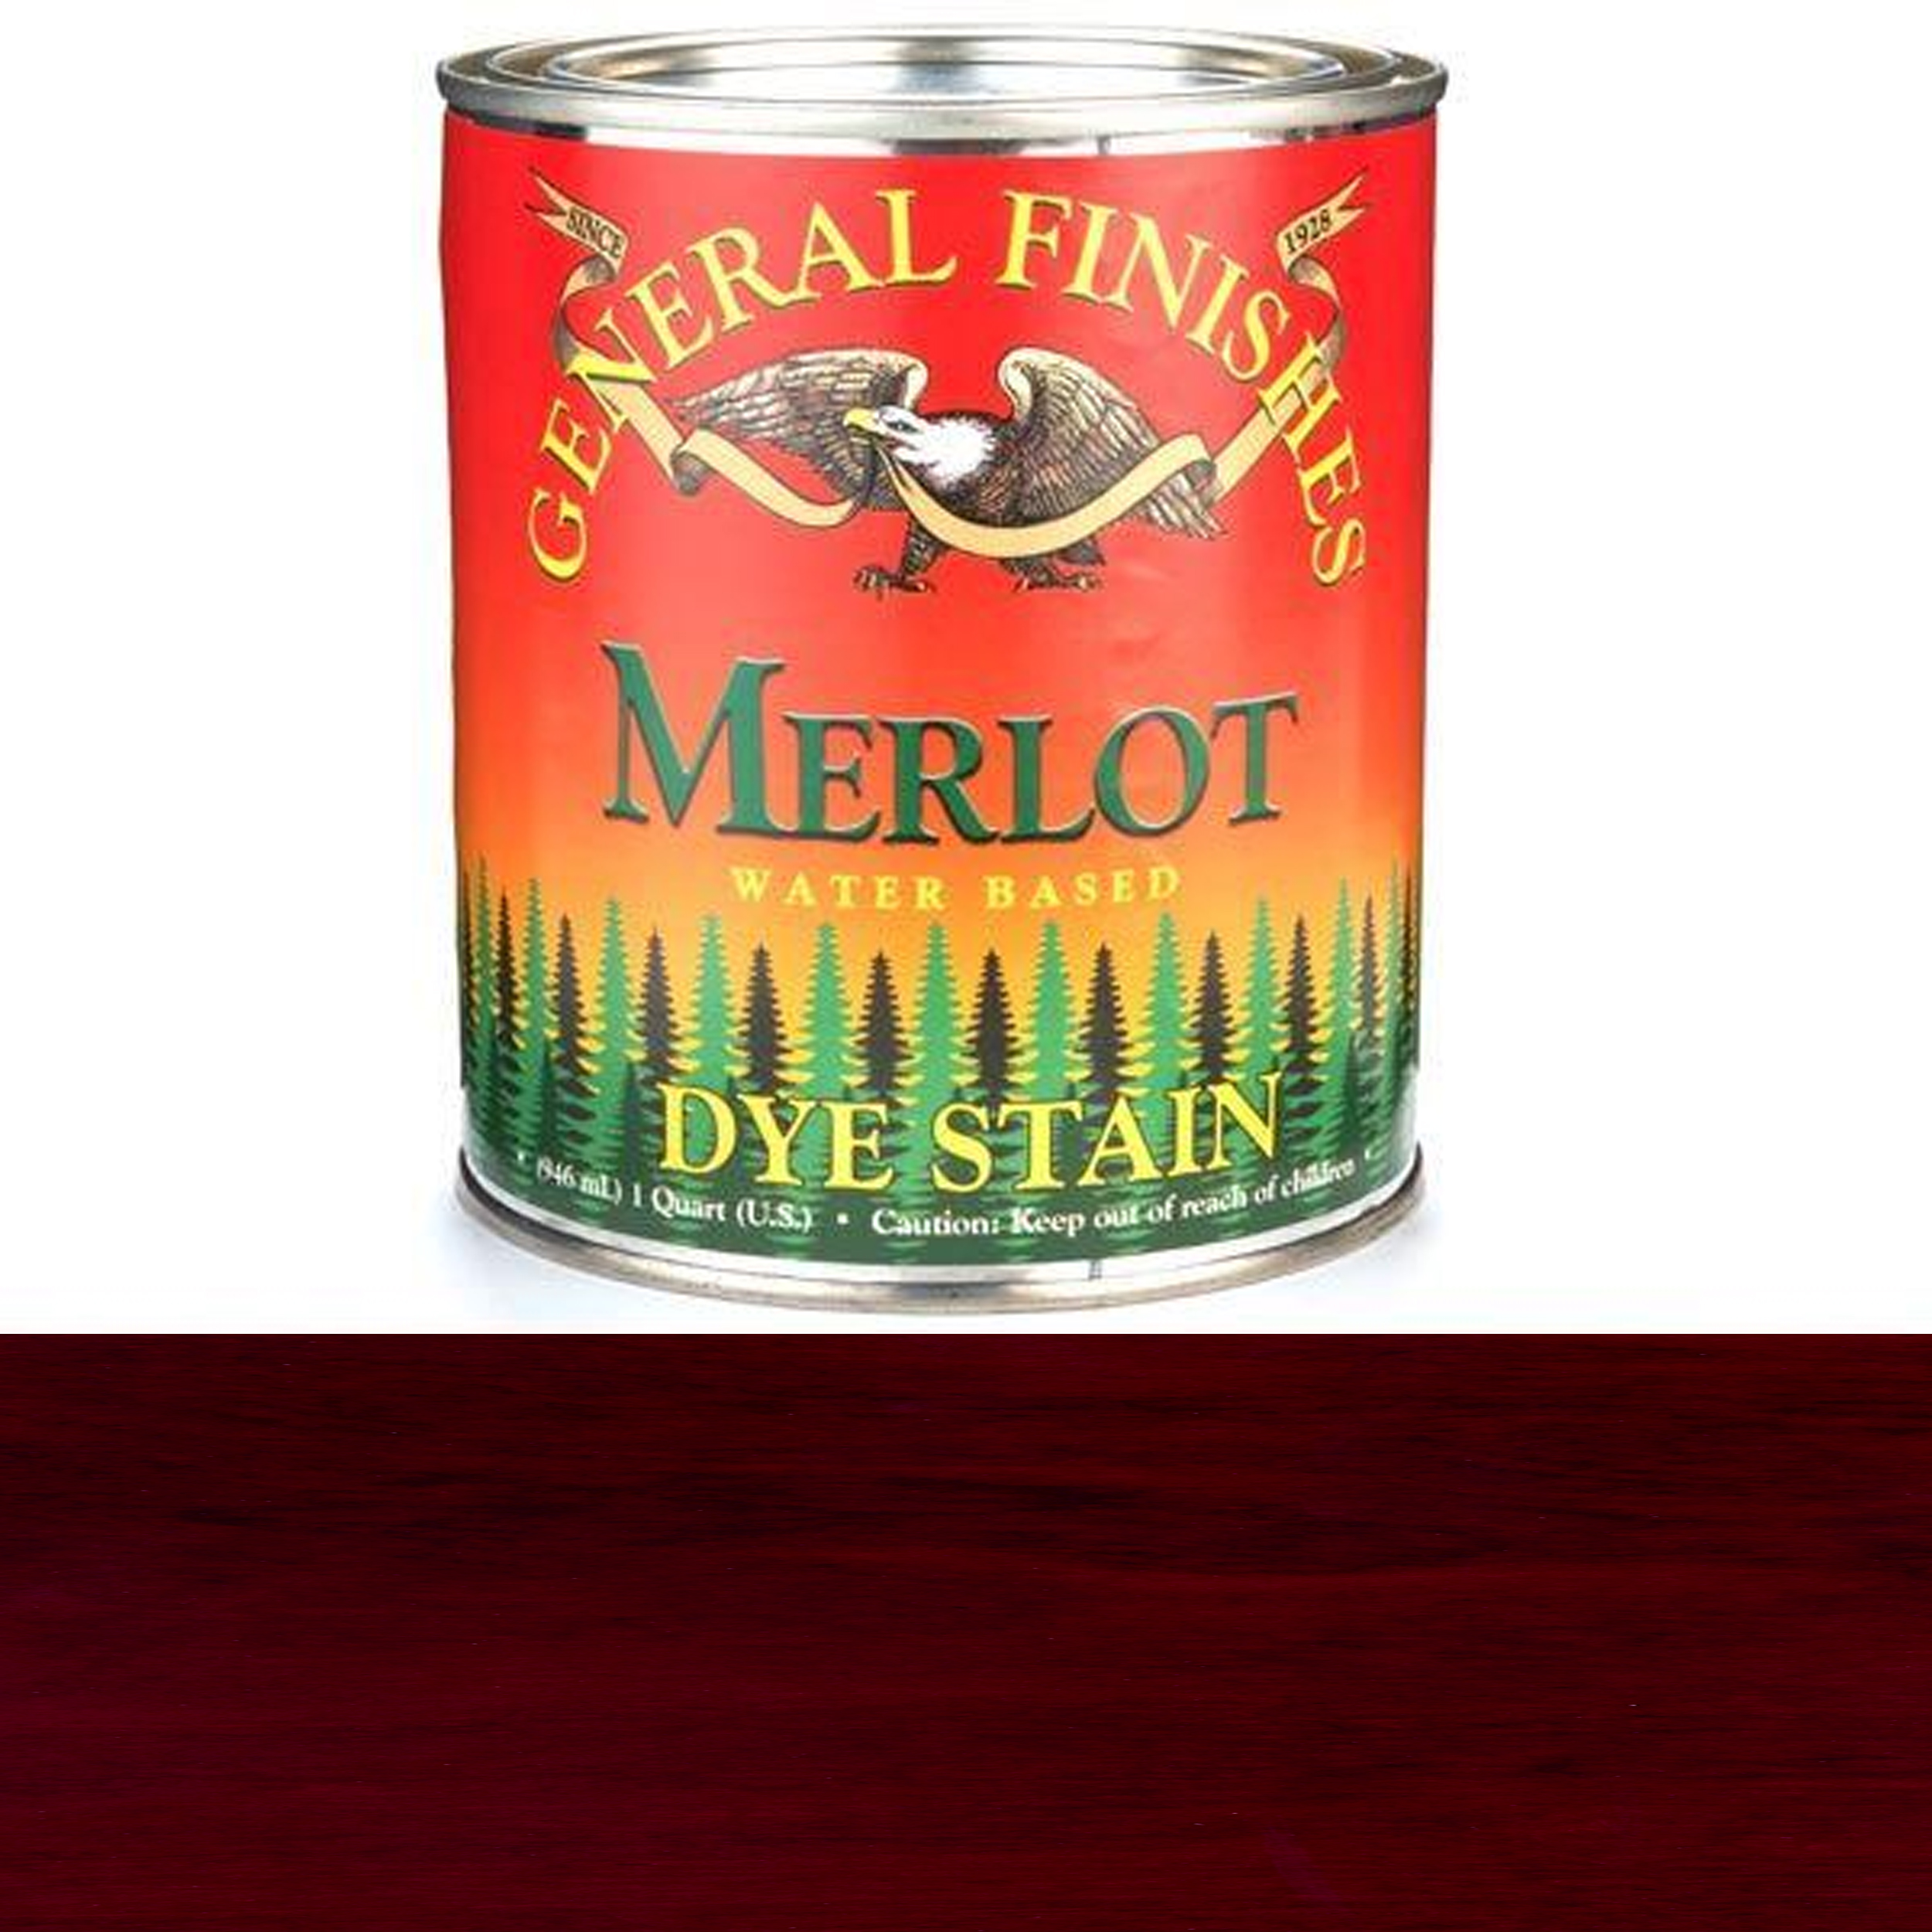 General Finishes, Water Based Dye, Merlot, Quart